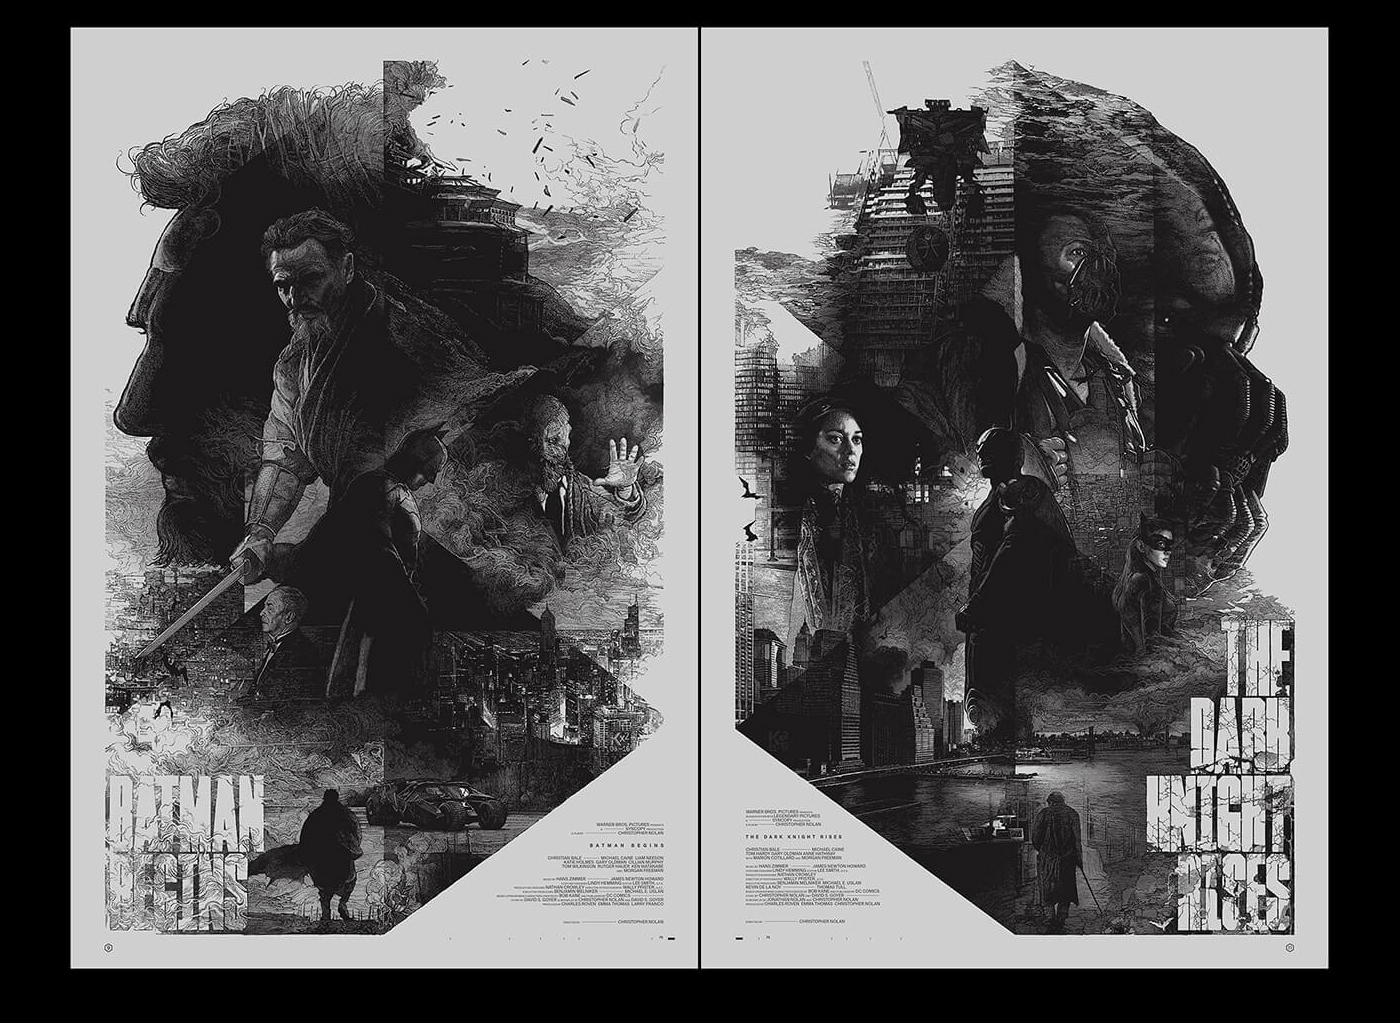 Illustration: The Dark Knight Trilogy by Krzysztof Domaradzki